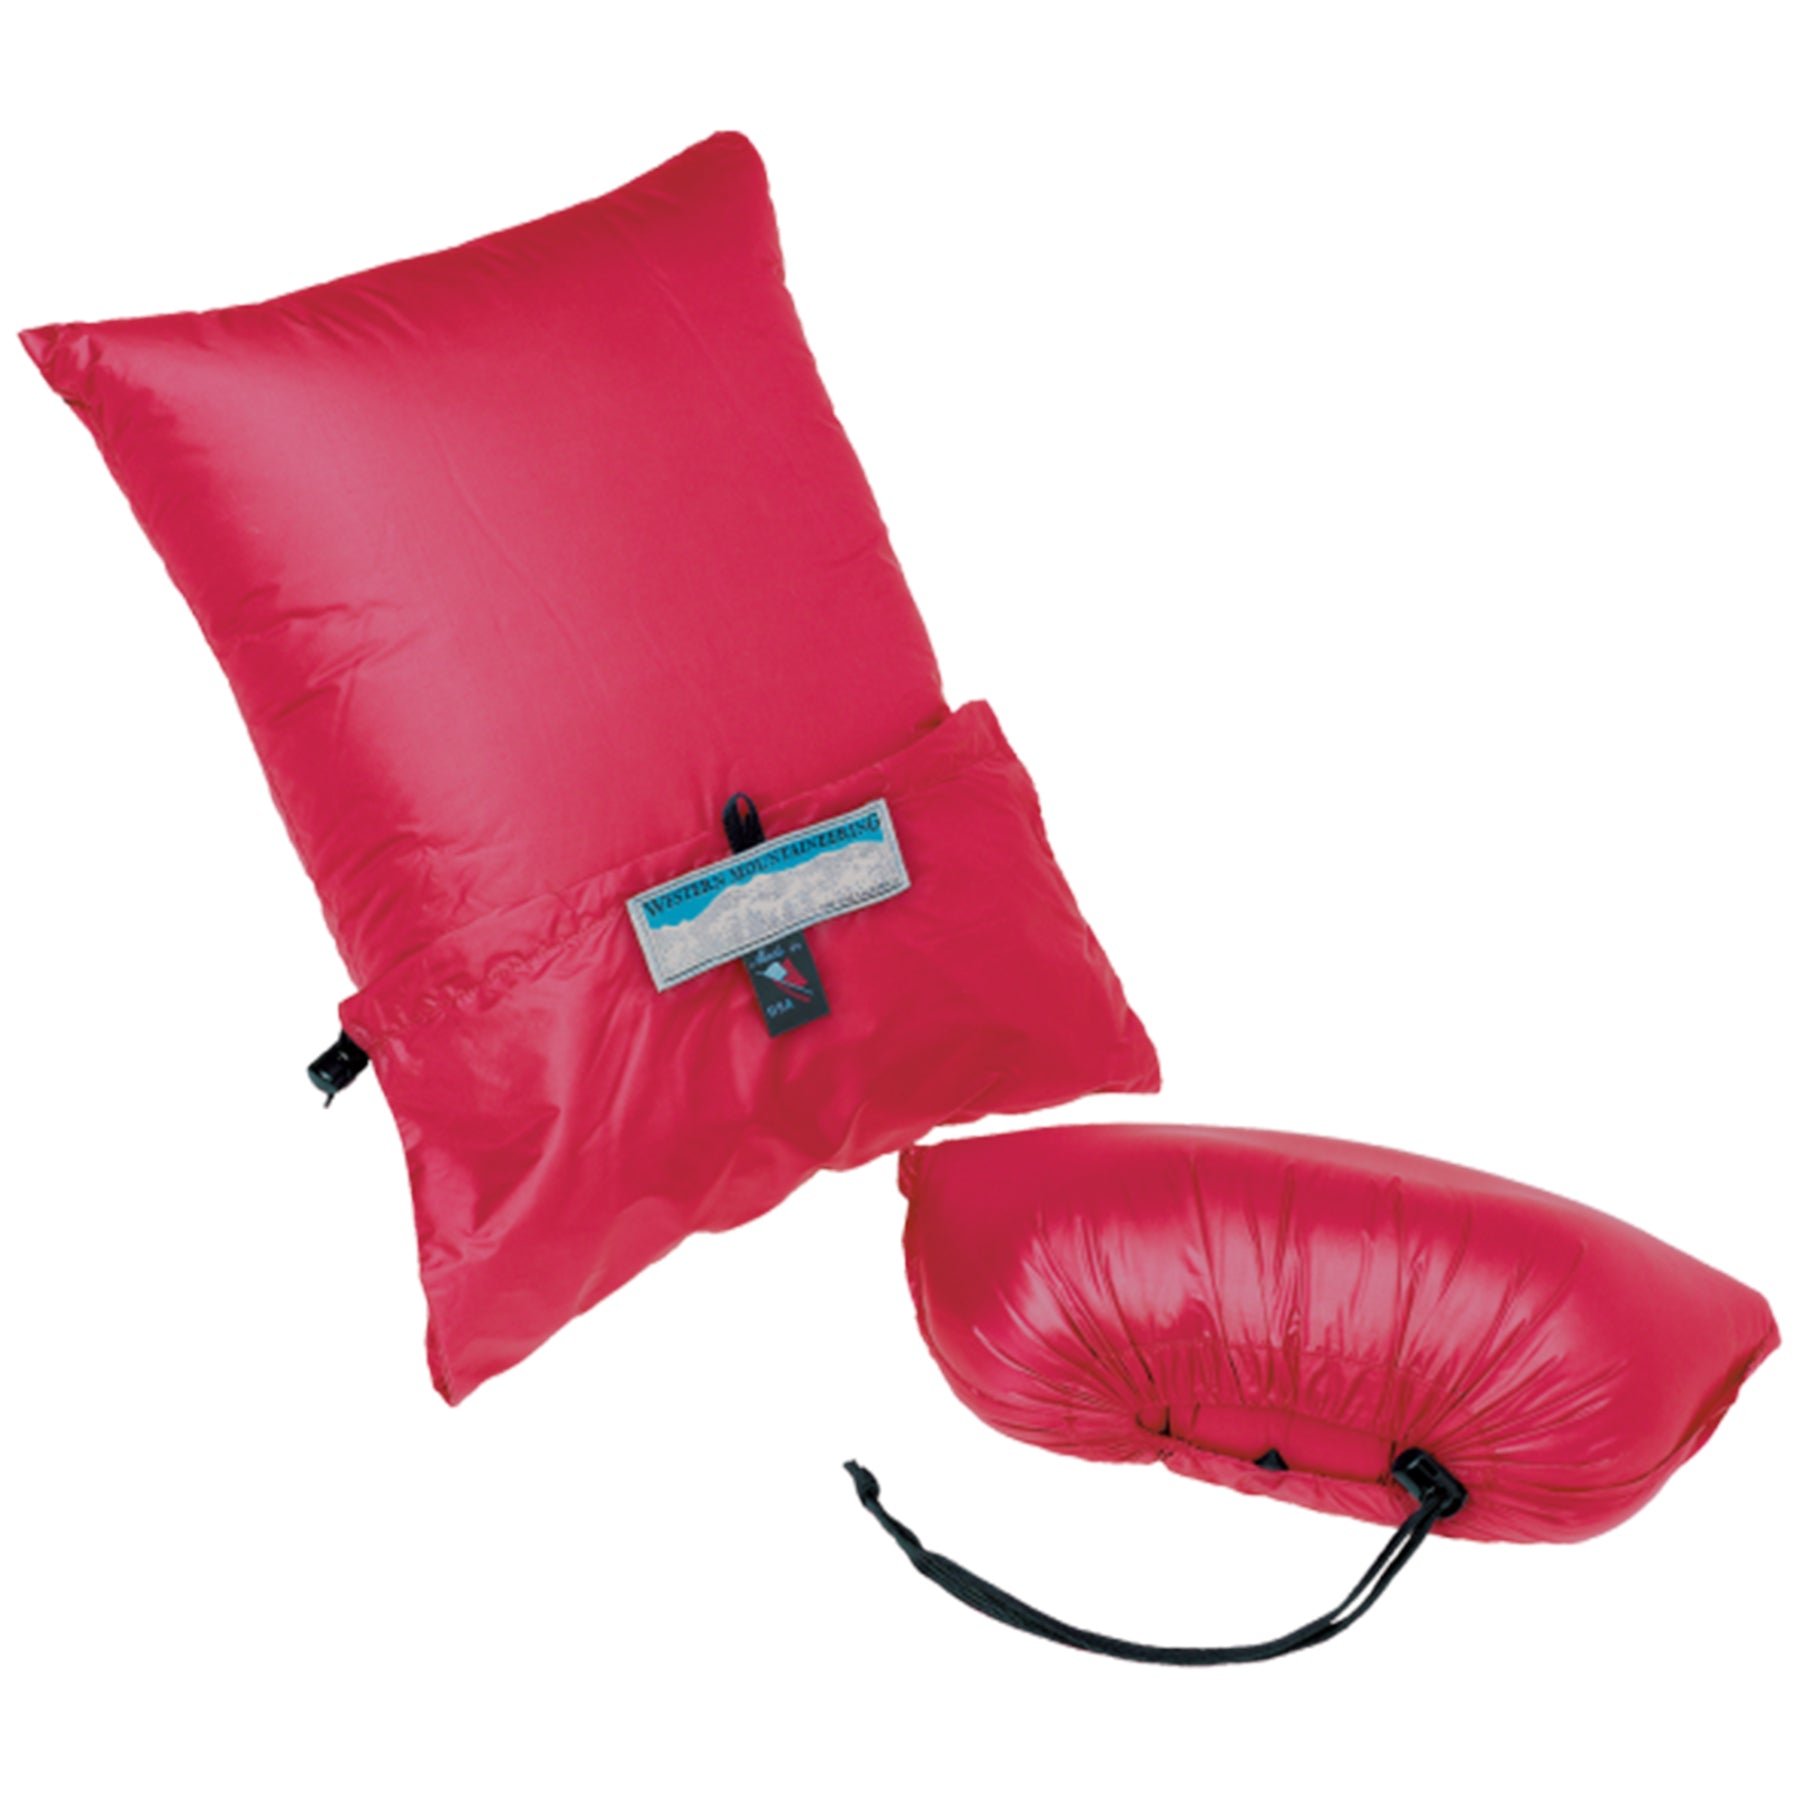 CLOUDREST DOWN PILLOW FULLY EXPANDED AND FULLY STUFFED IN RED